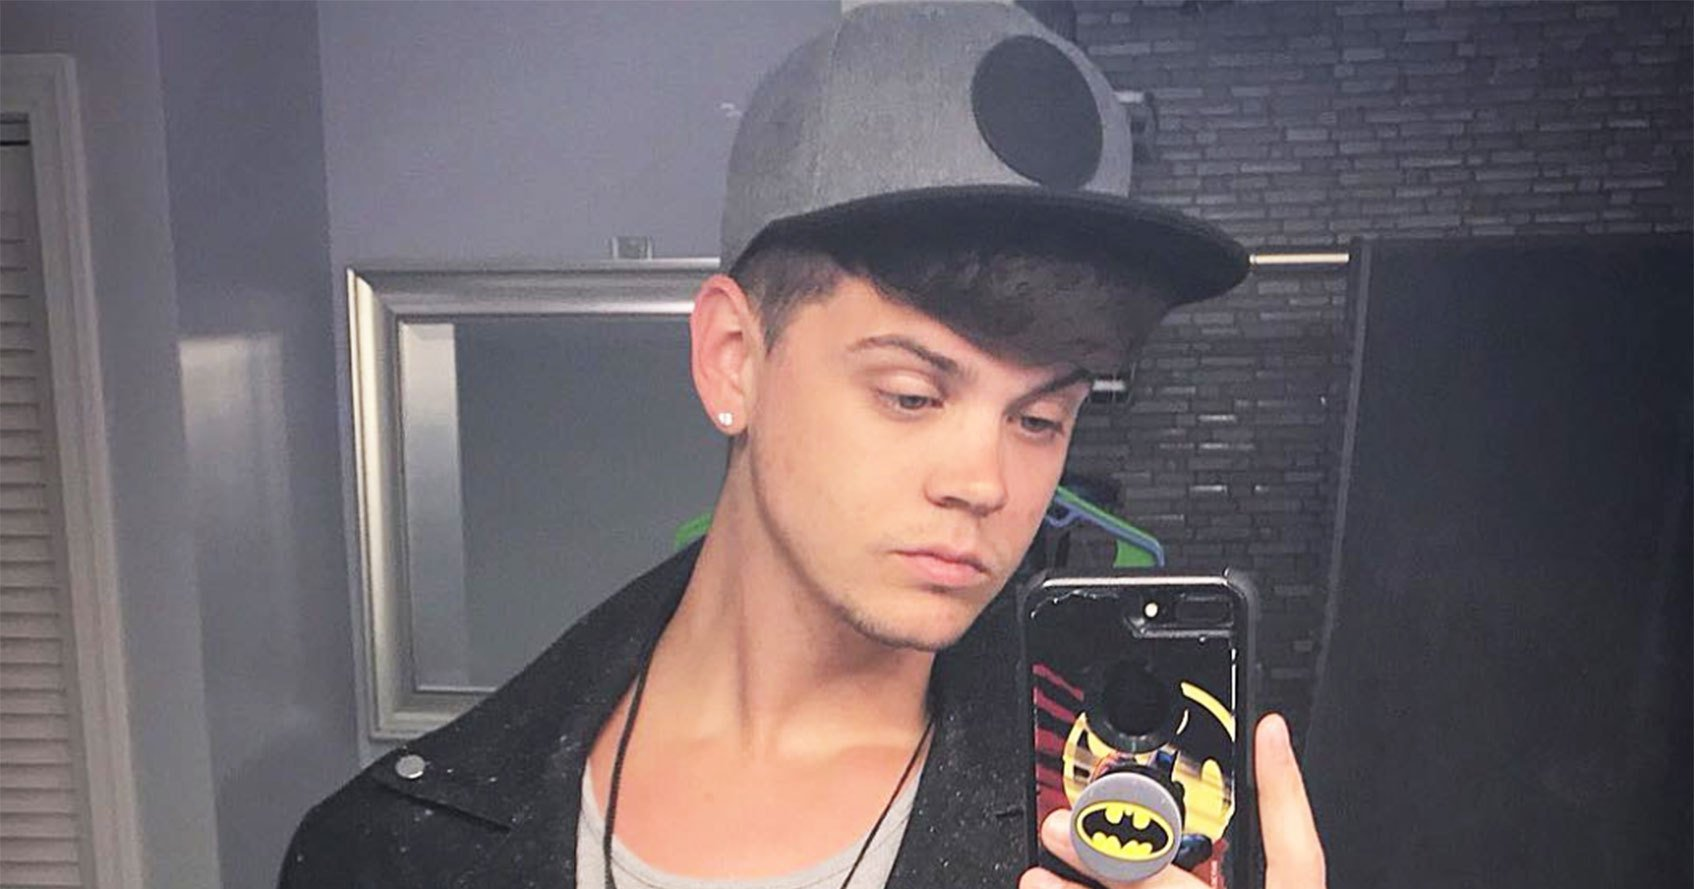 Tyler Baltierra: Catelynn and I Are Living Apart, But We're Not Separated